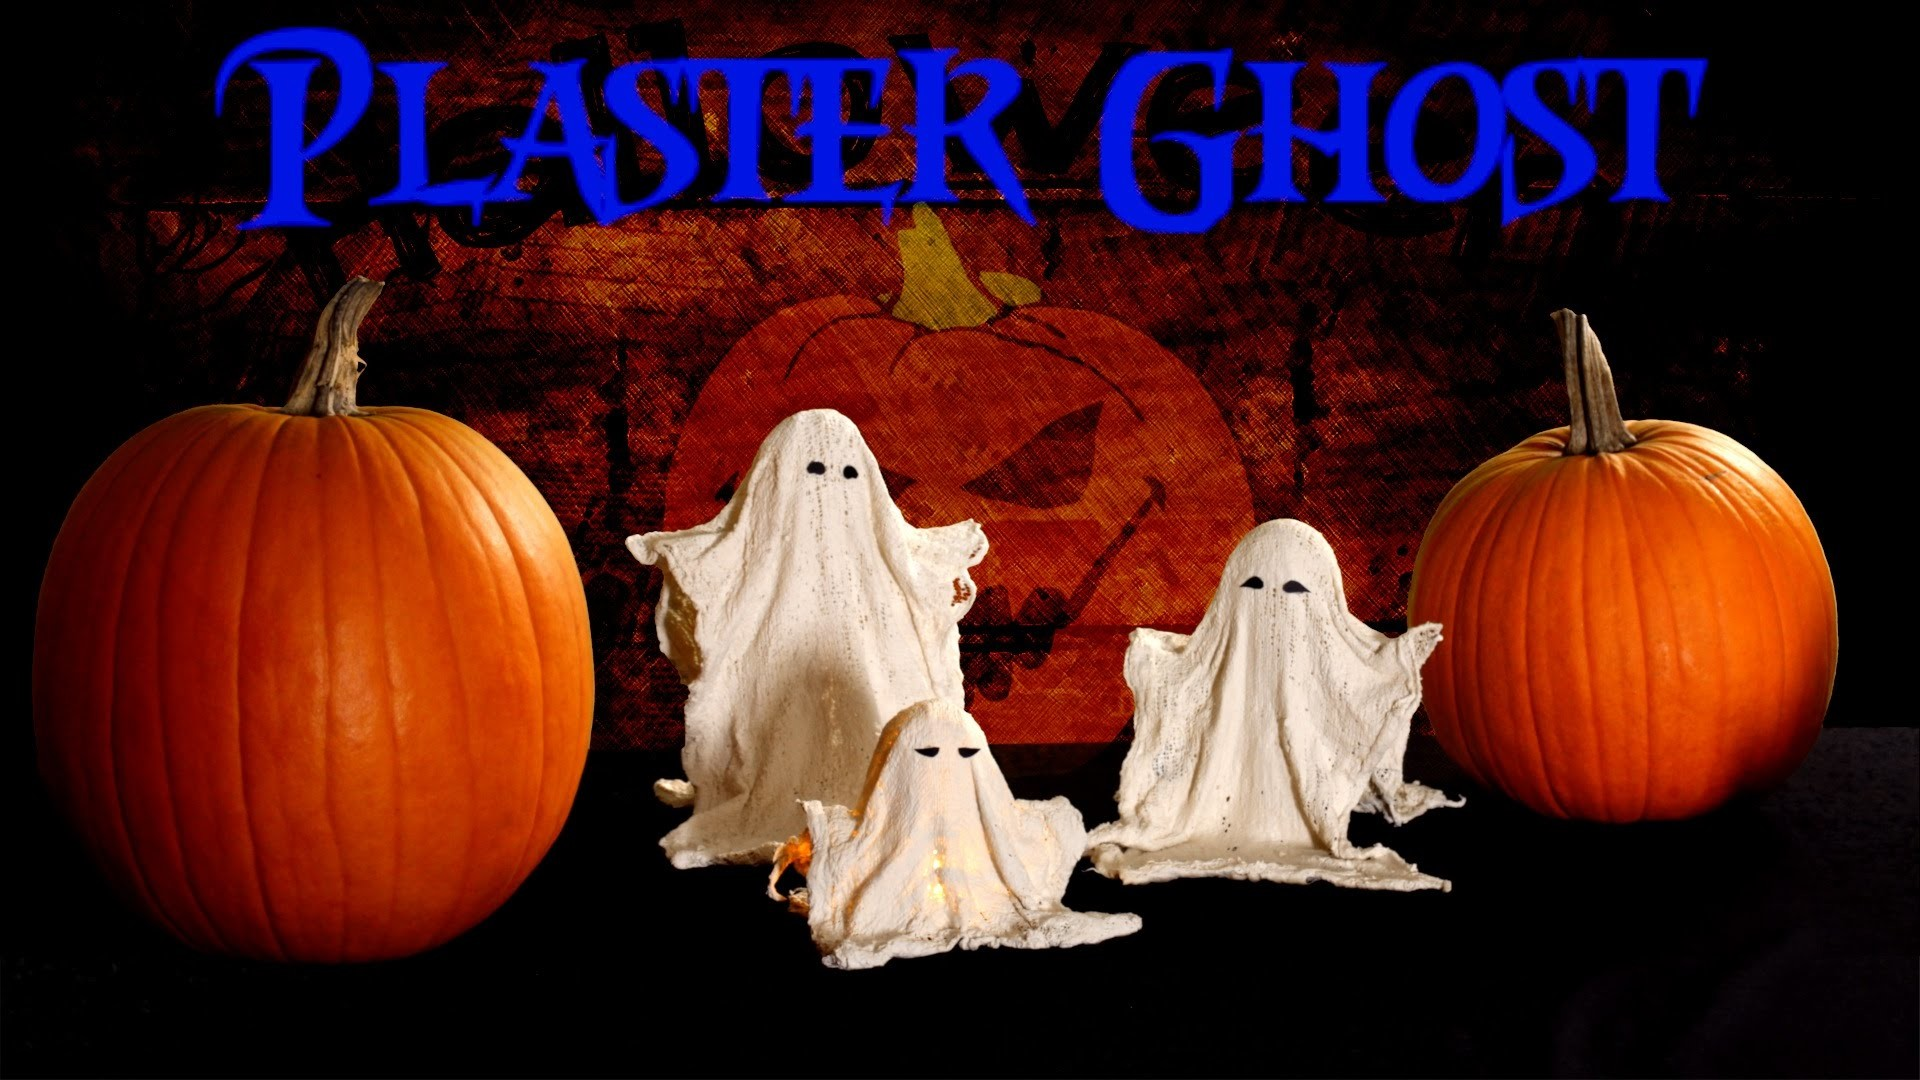 DIY Halloween Plaster Ghost Decorations fast, easy, cheap 2014